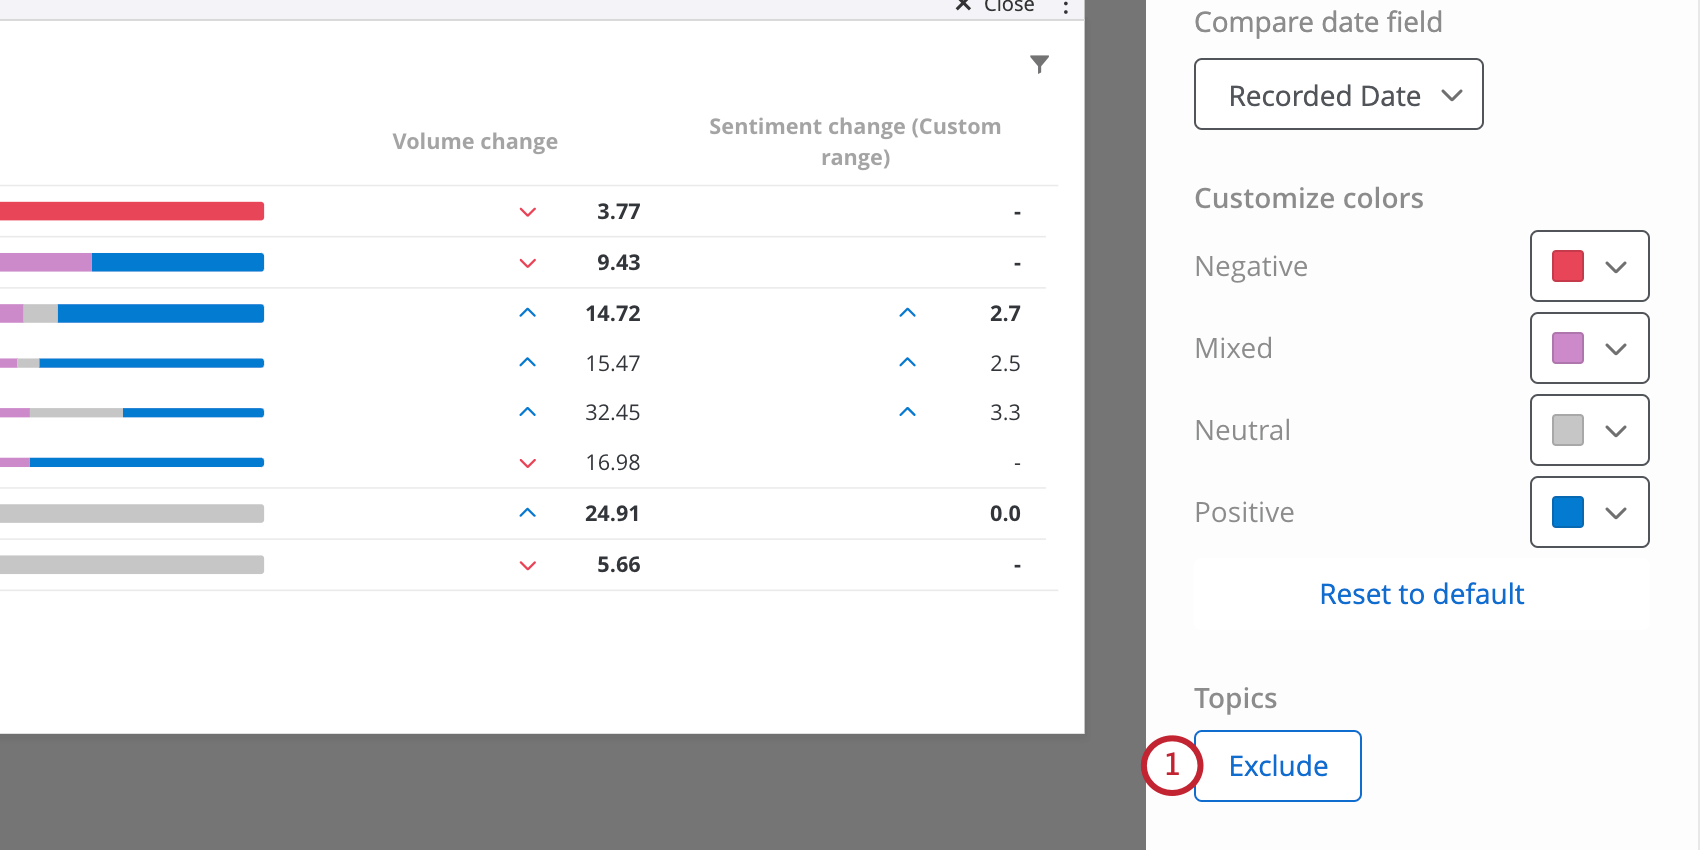 Exclude button in widget editing pane